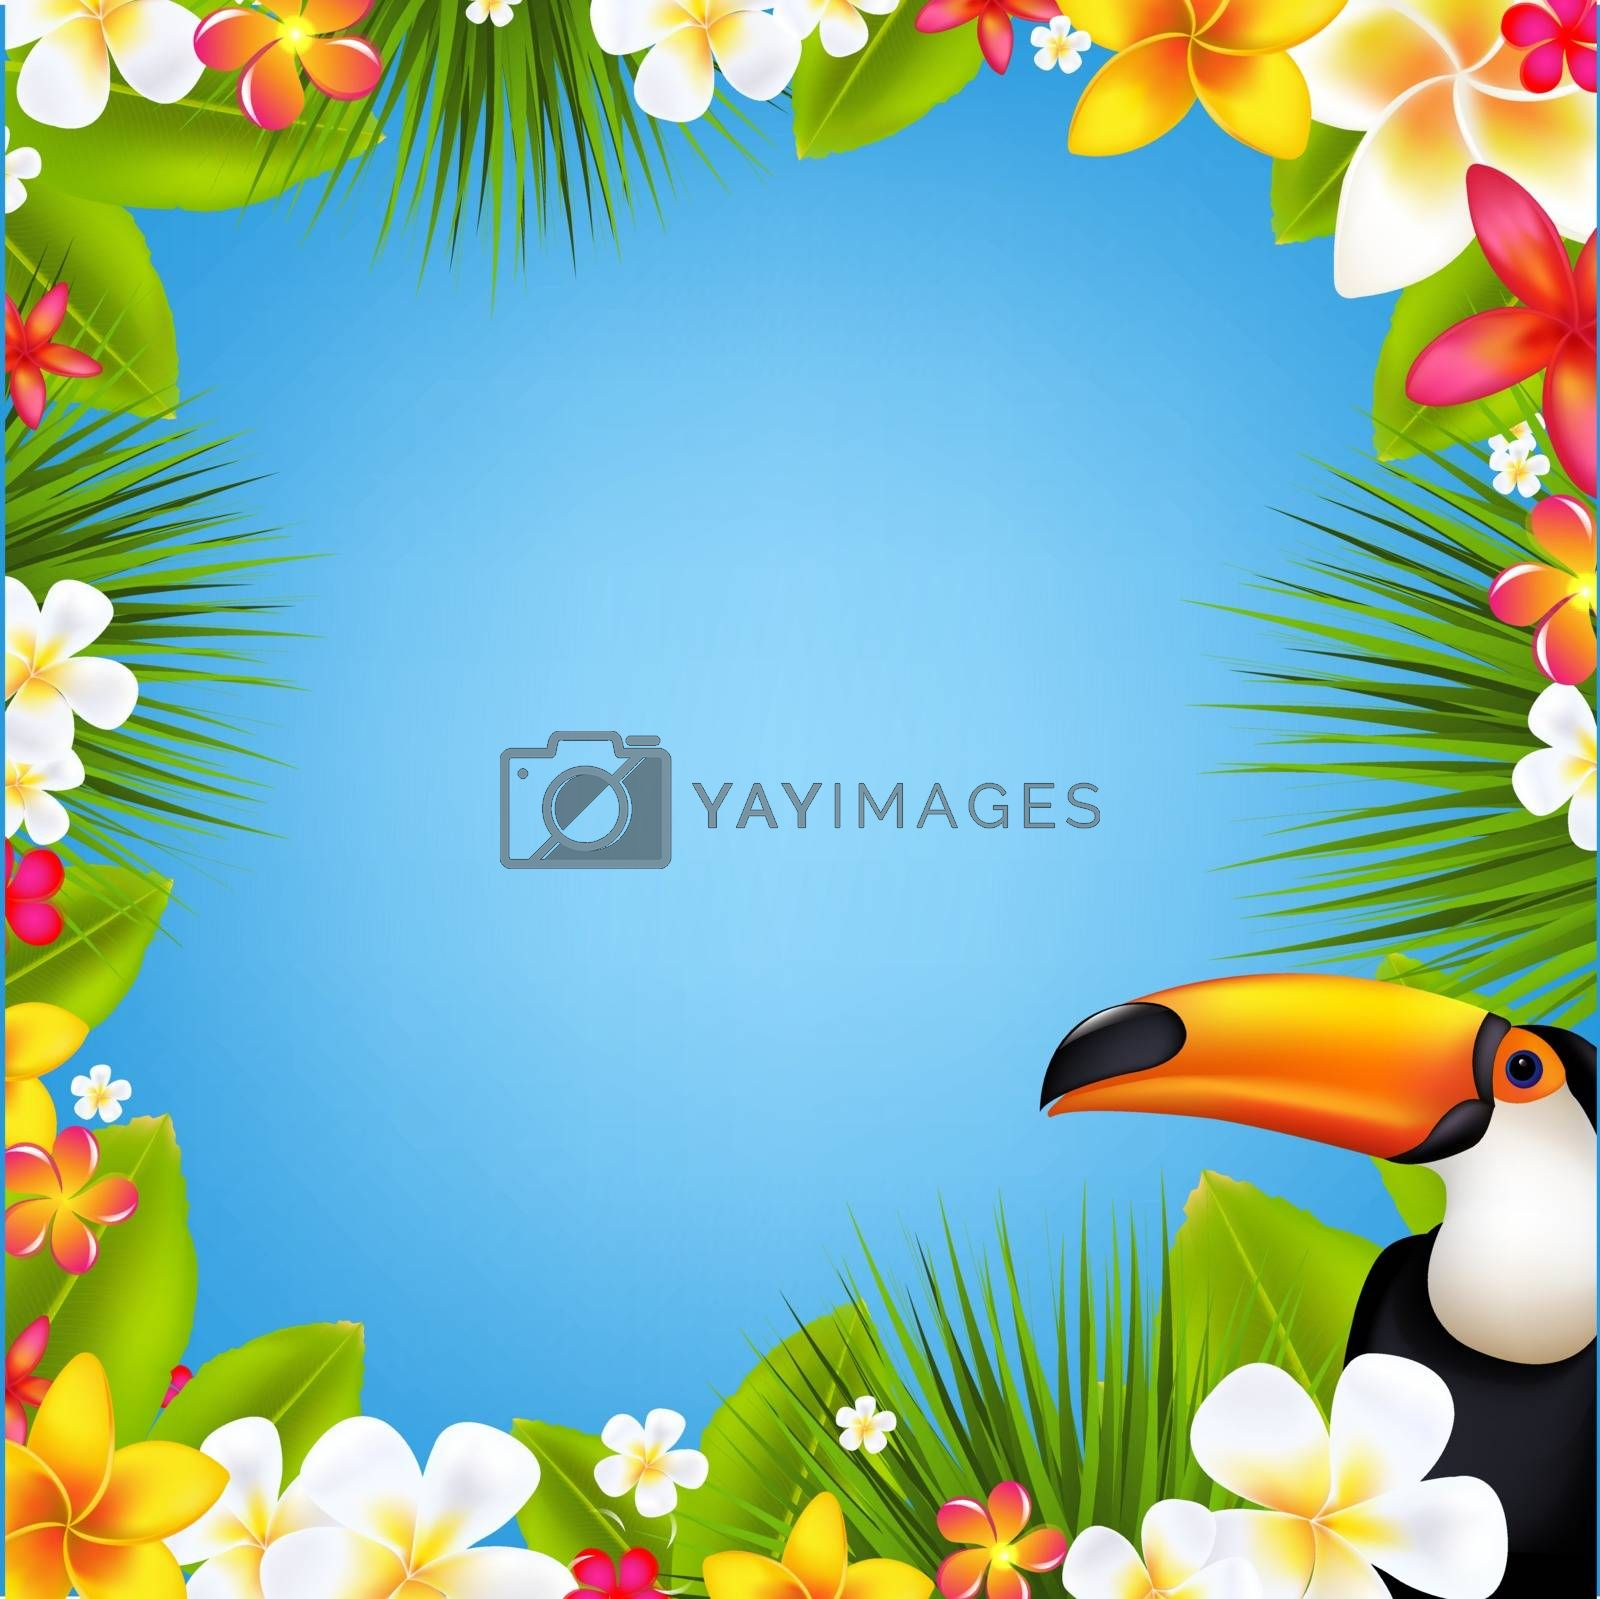 Sale Banner With Frangipani With Gradient Mesh, With Gradient Mesh, Vector Illustration